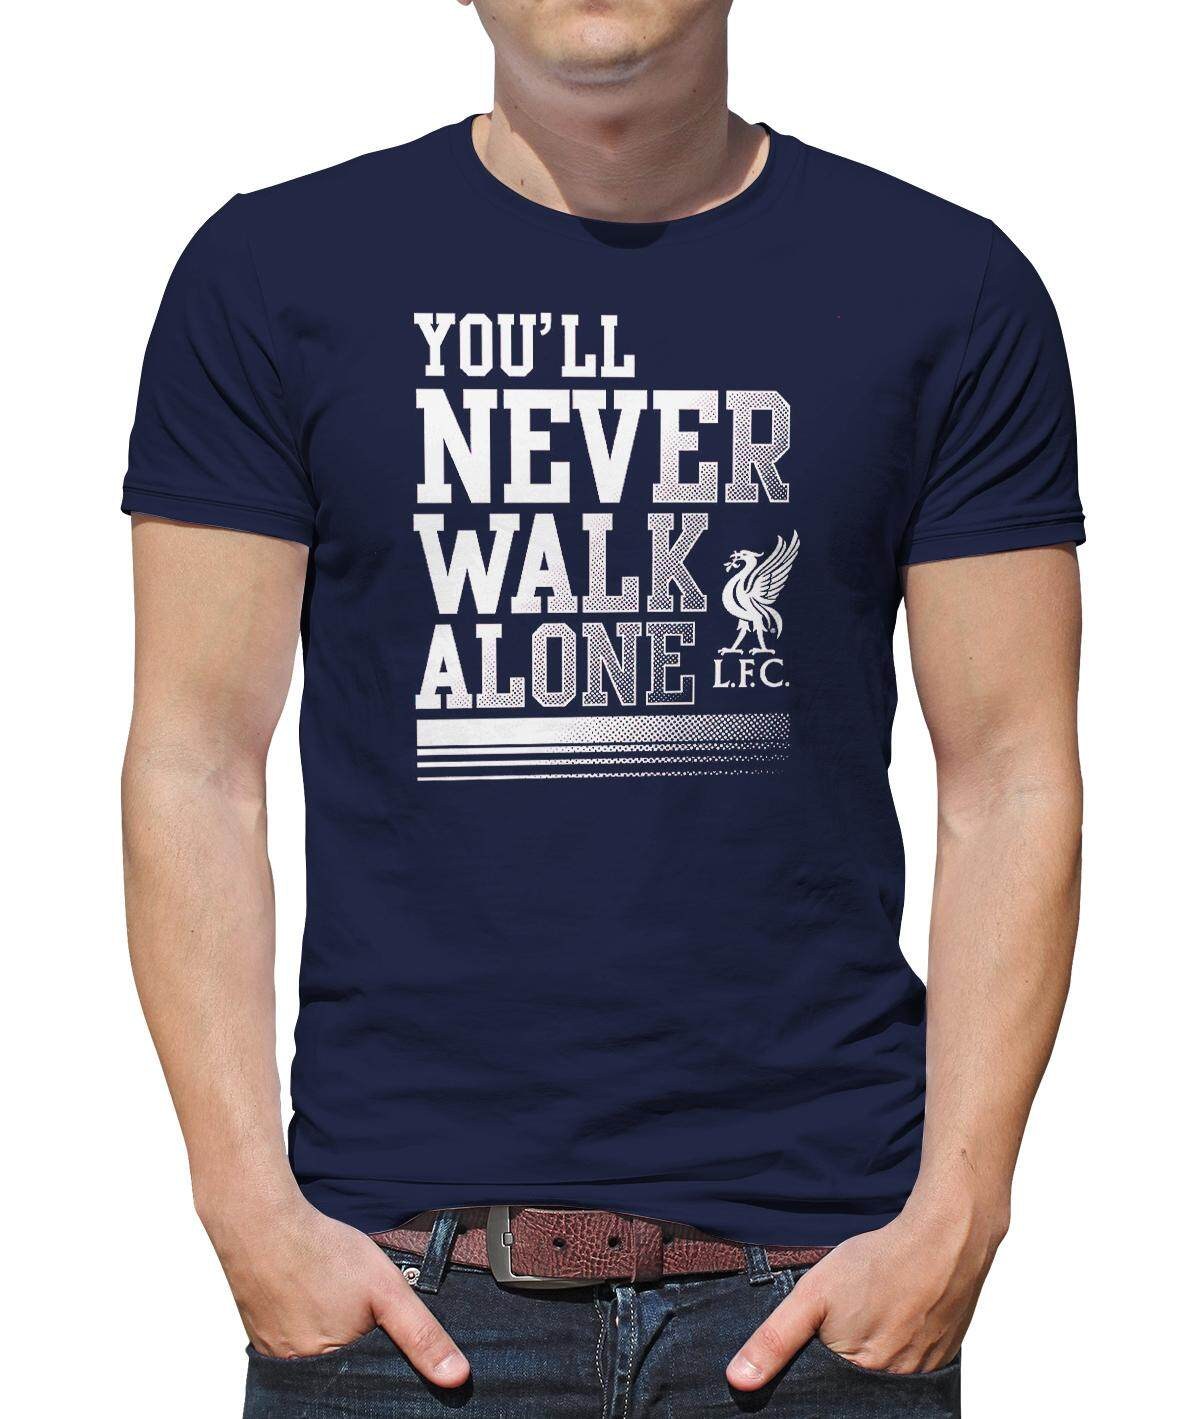 Men Trendy Clothing With Best Online Price In Malaysia Tendencies Tshirt Sun Of Beach Hitam S Liverpool Never Fan Alone T Shirt